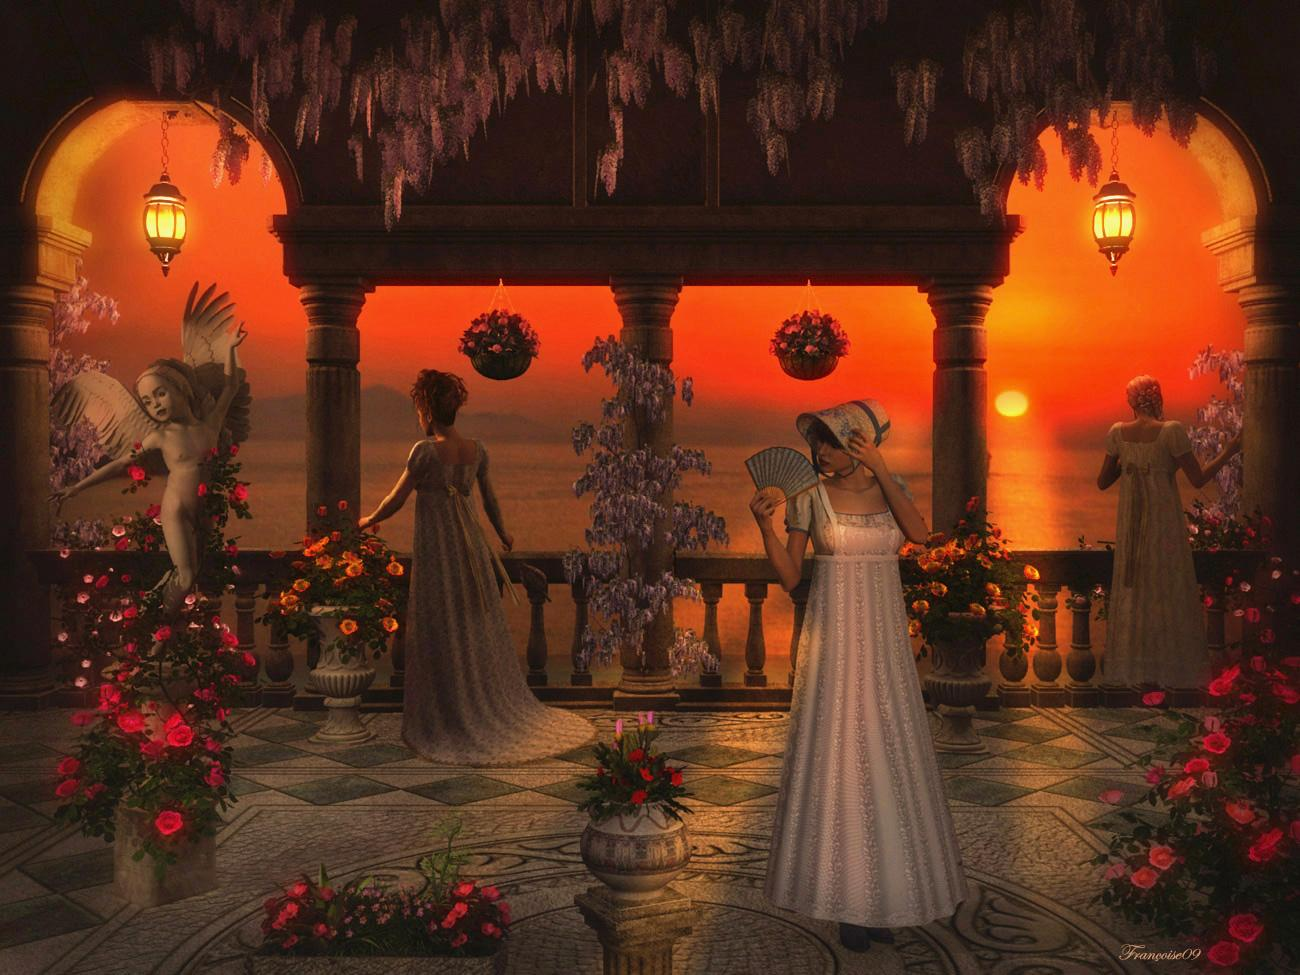 Flowery Patio at the Sunset by madame